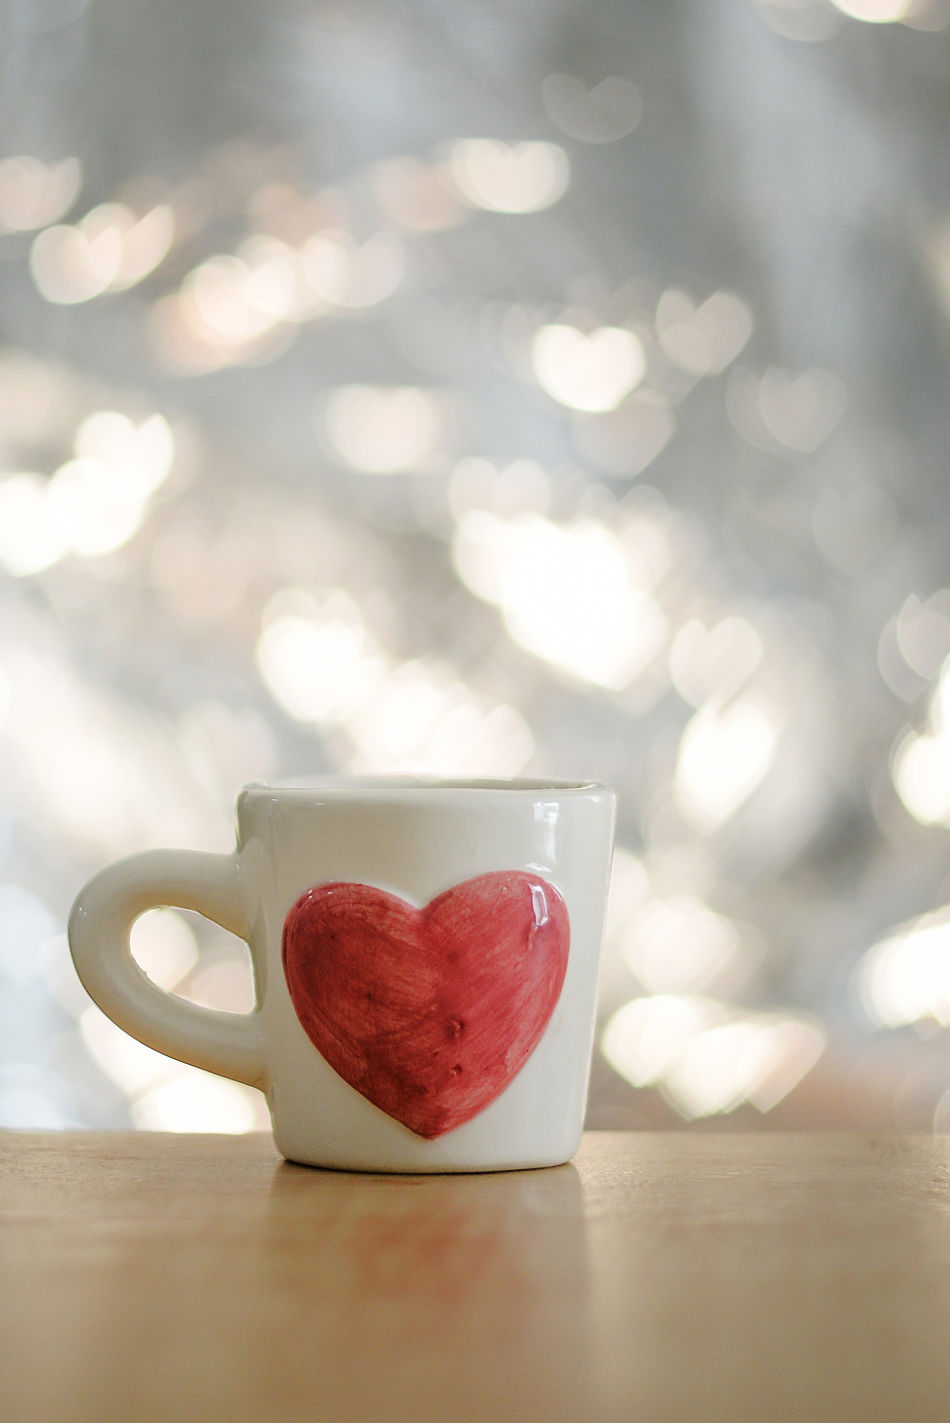 Close-up Coffee - Drink Coffee Cup Day Drink Food Food And Drink Freshness Healthy Eating Heart Shape Indoors  Love No People Red Refreshment Table Water